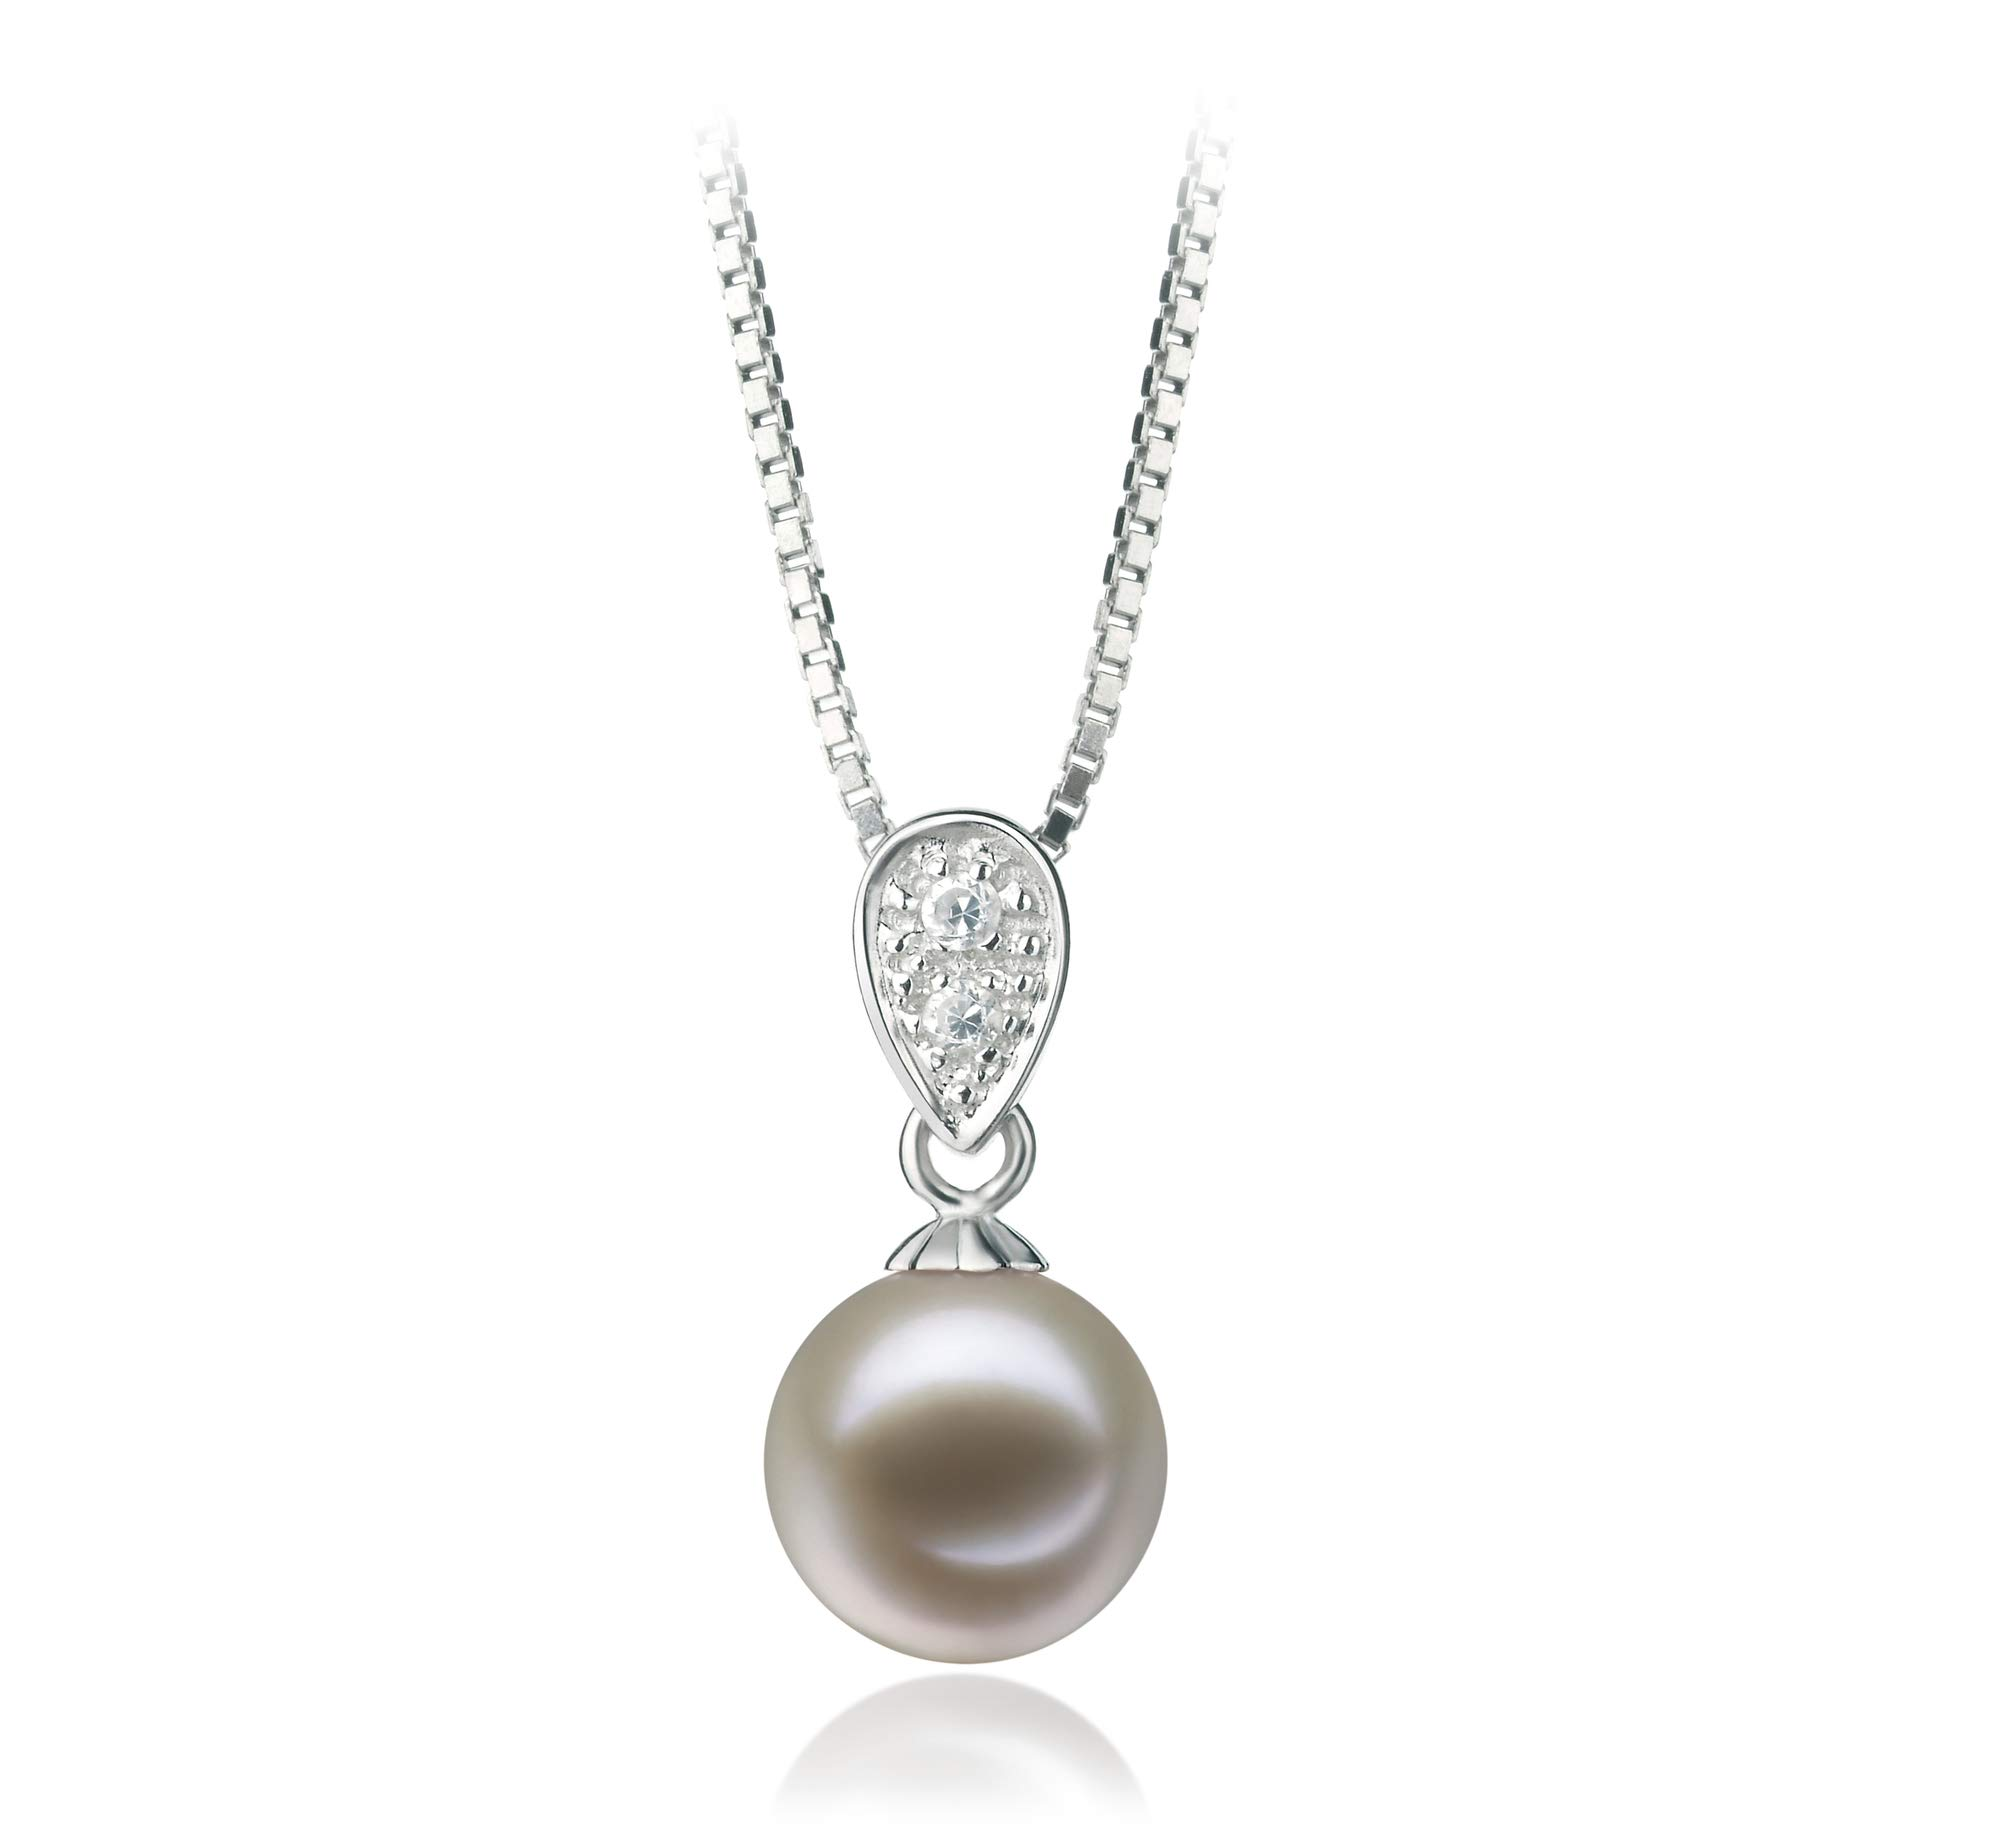 Daria White 7-8mm AAAA Quality Freshwater 925 Sterling Silver Cultured Pearl Pendant For Women